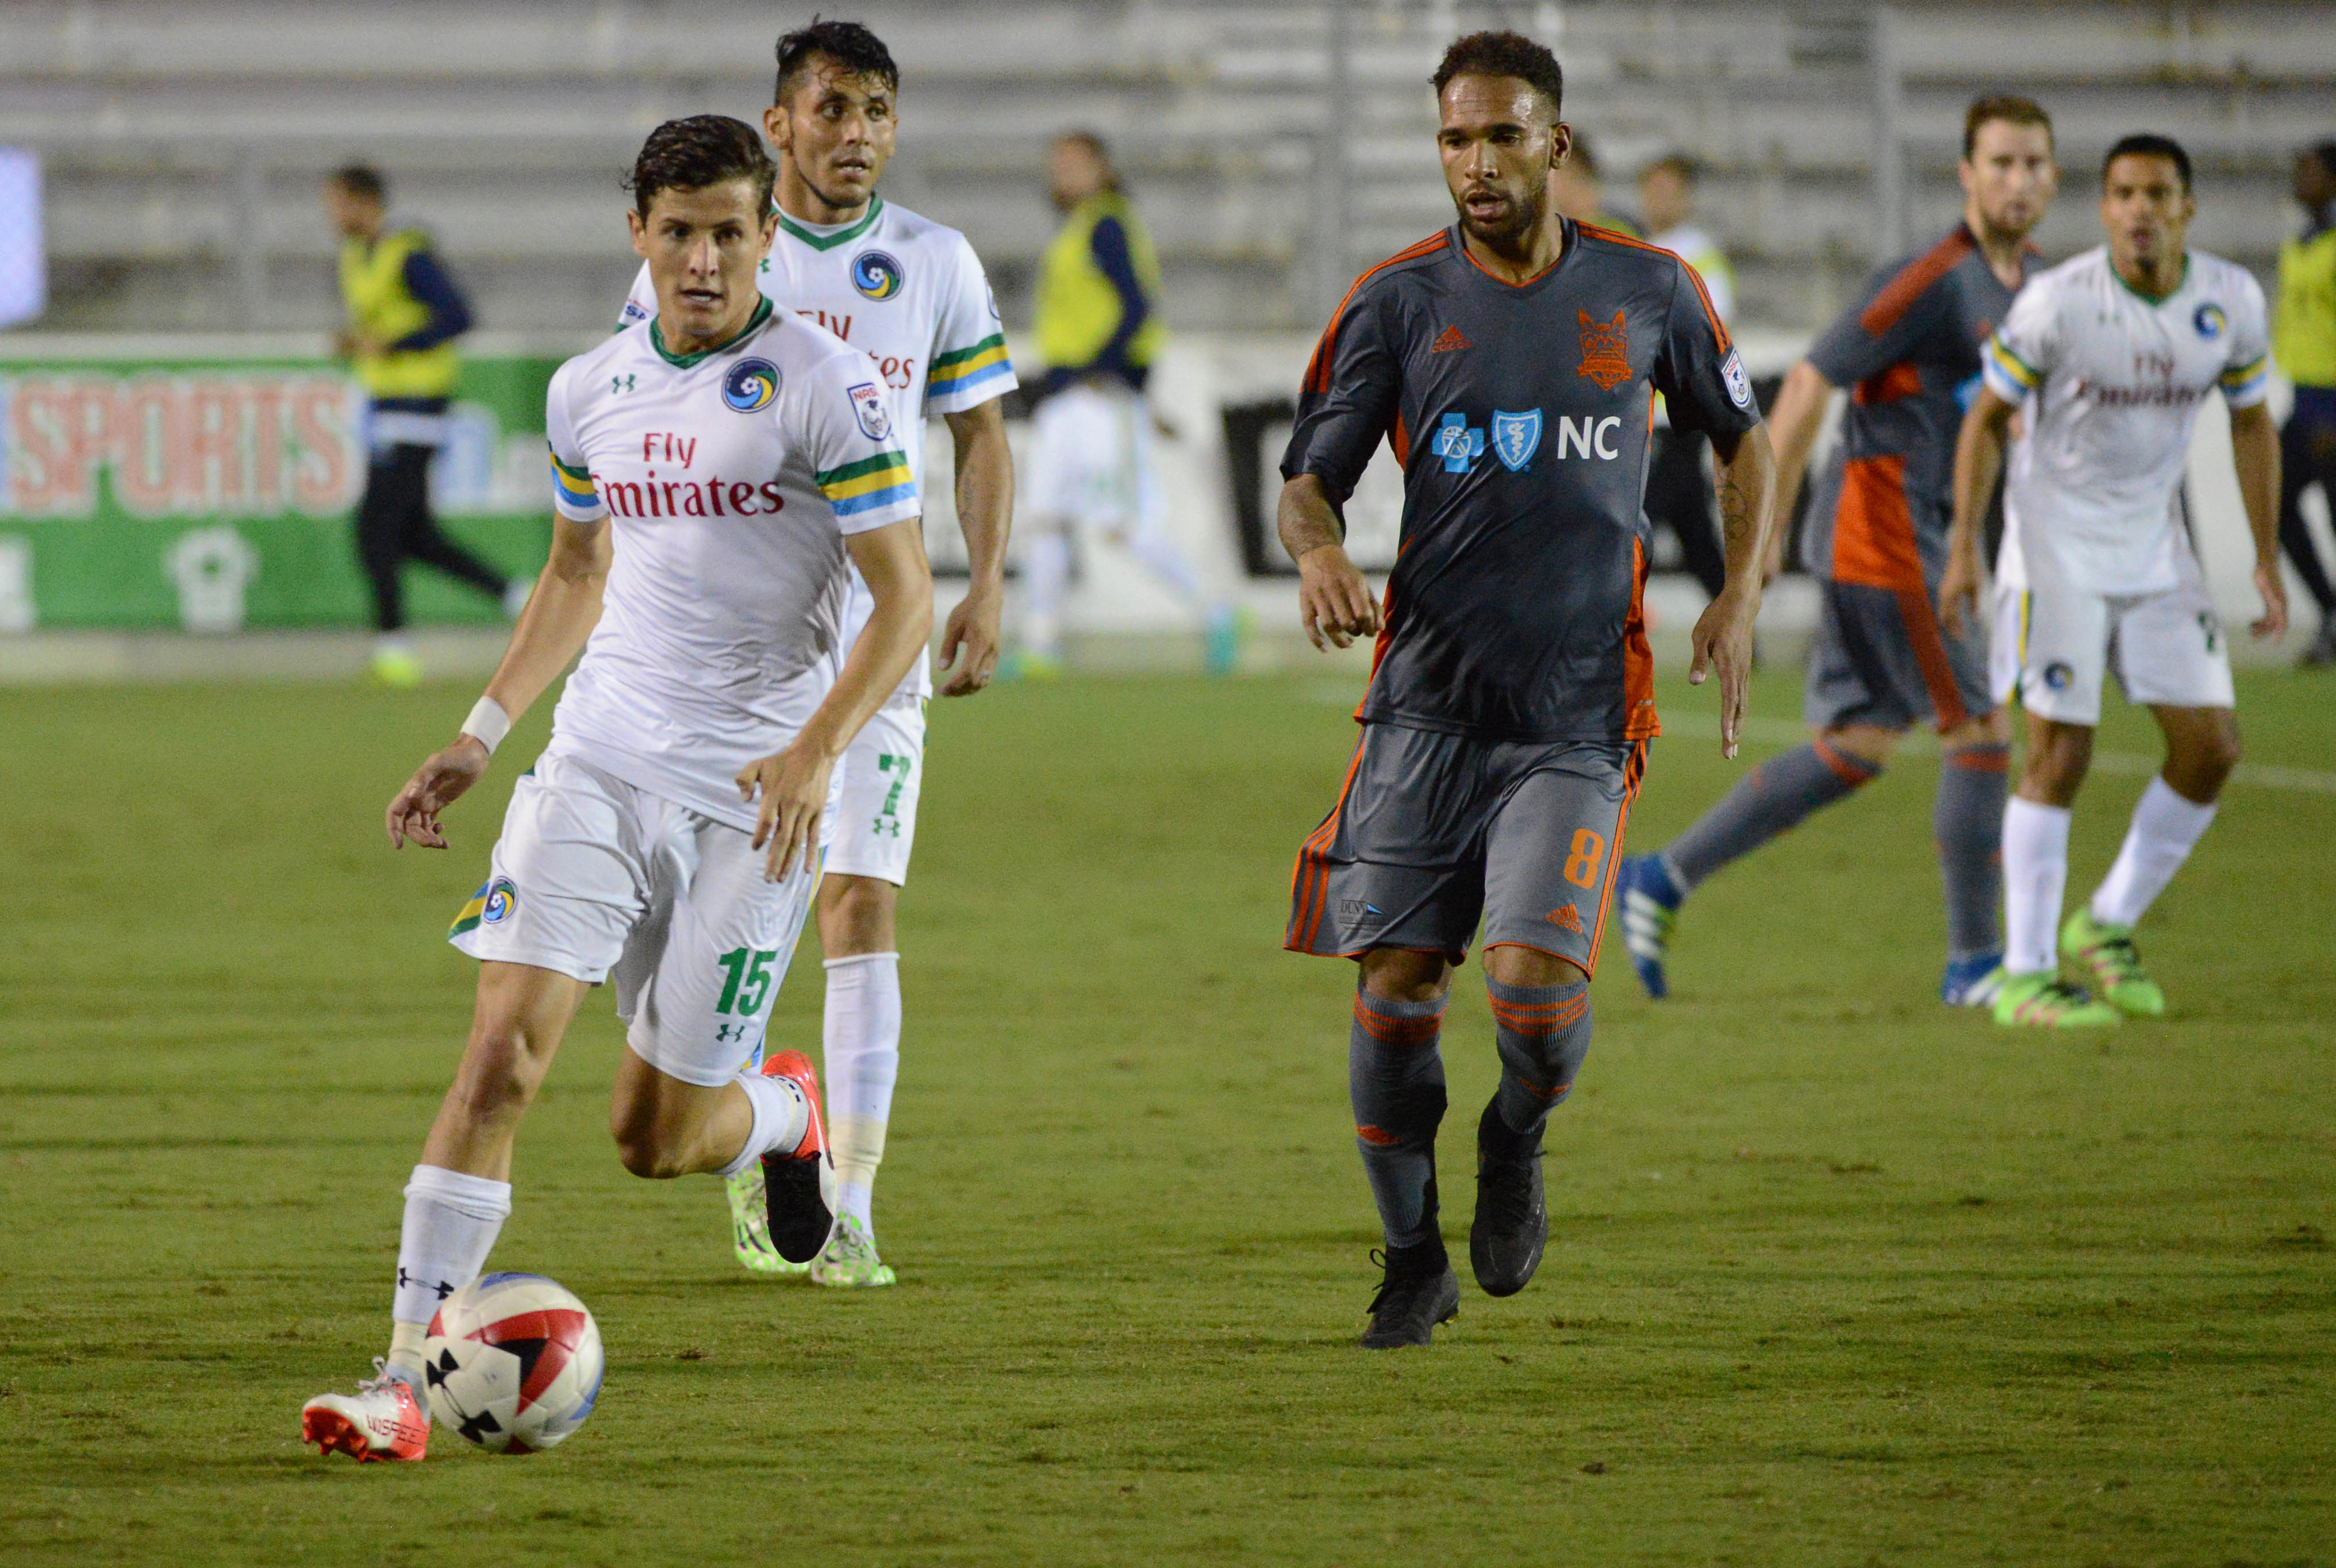 Photo by Rob Kinnan/Carolina RailHawks